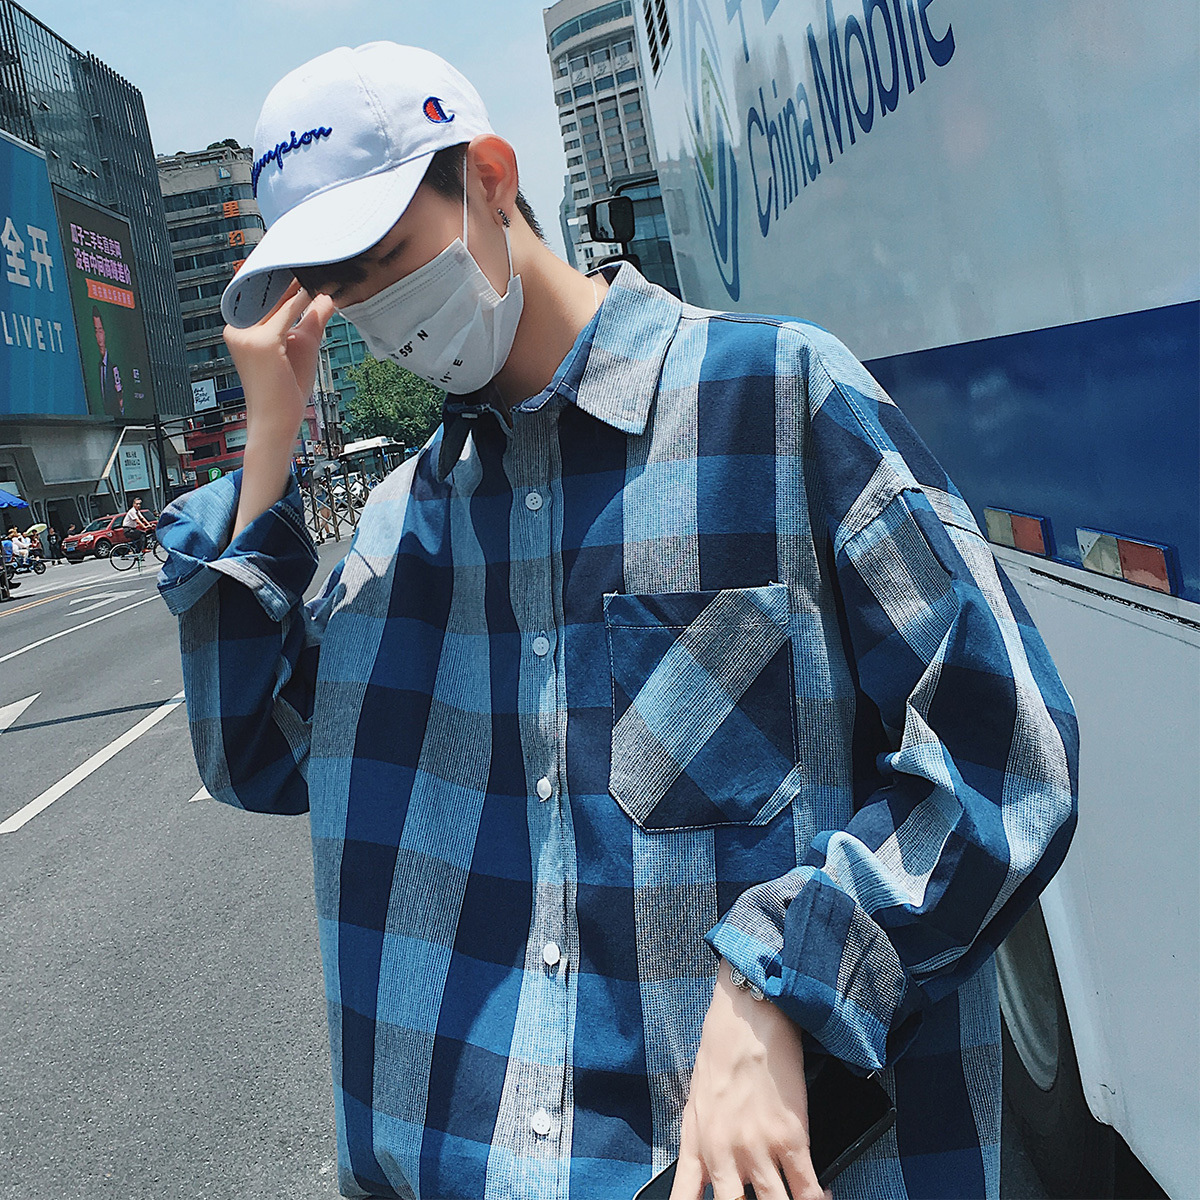 Fashion Casual Men 39 s Long Sleeve Shirt Spring And Autumn New M 2XL Plaid Square Collar Loose Shirt Blue PersonalityYouth Popular in Casual Shirts from Men 39 s Clothing